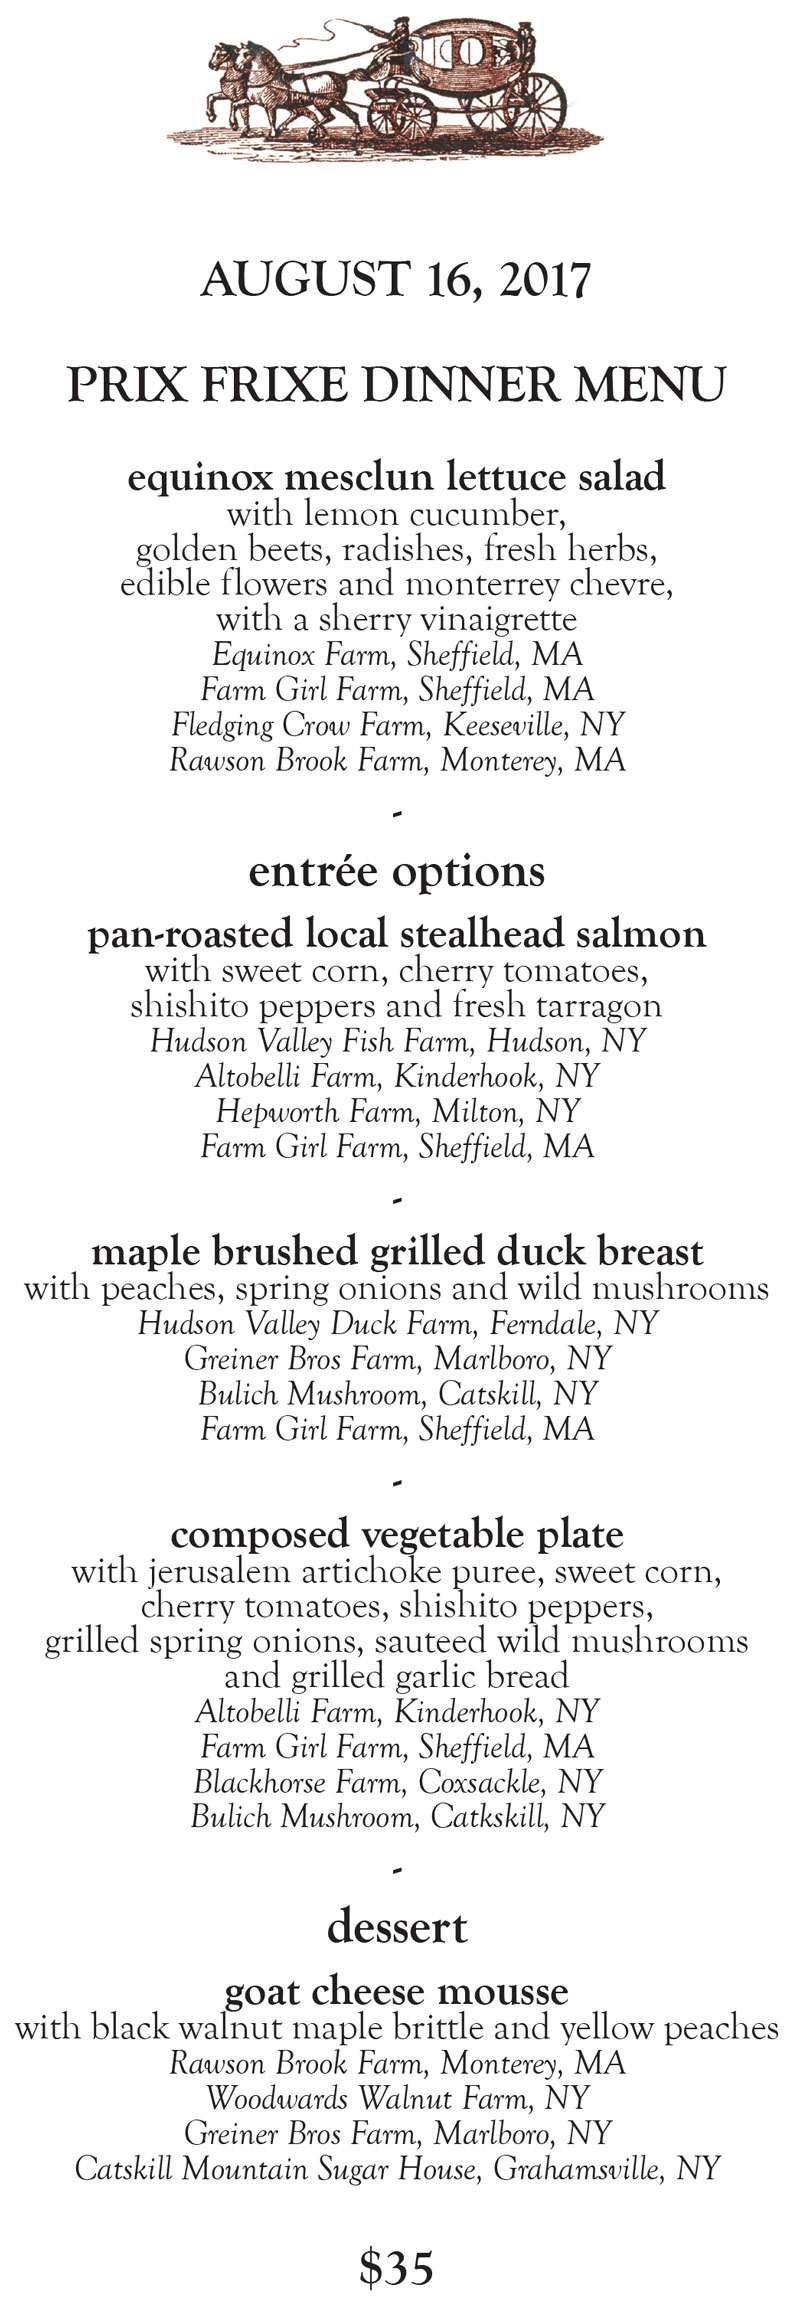 Aug. 16 Pop Up Dinner Menu to welcome Chef Laurel to The Stagecoach Tavern